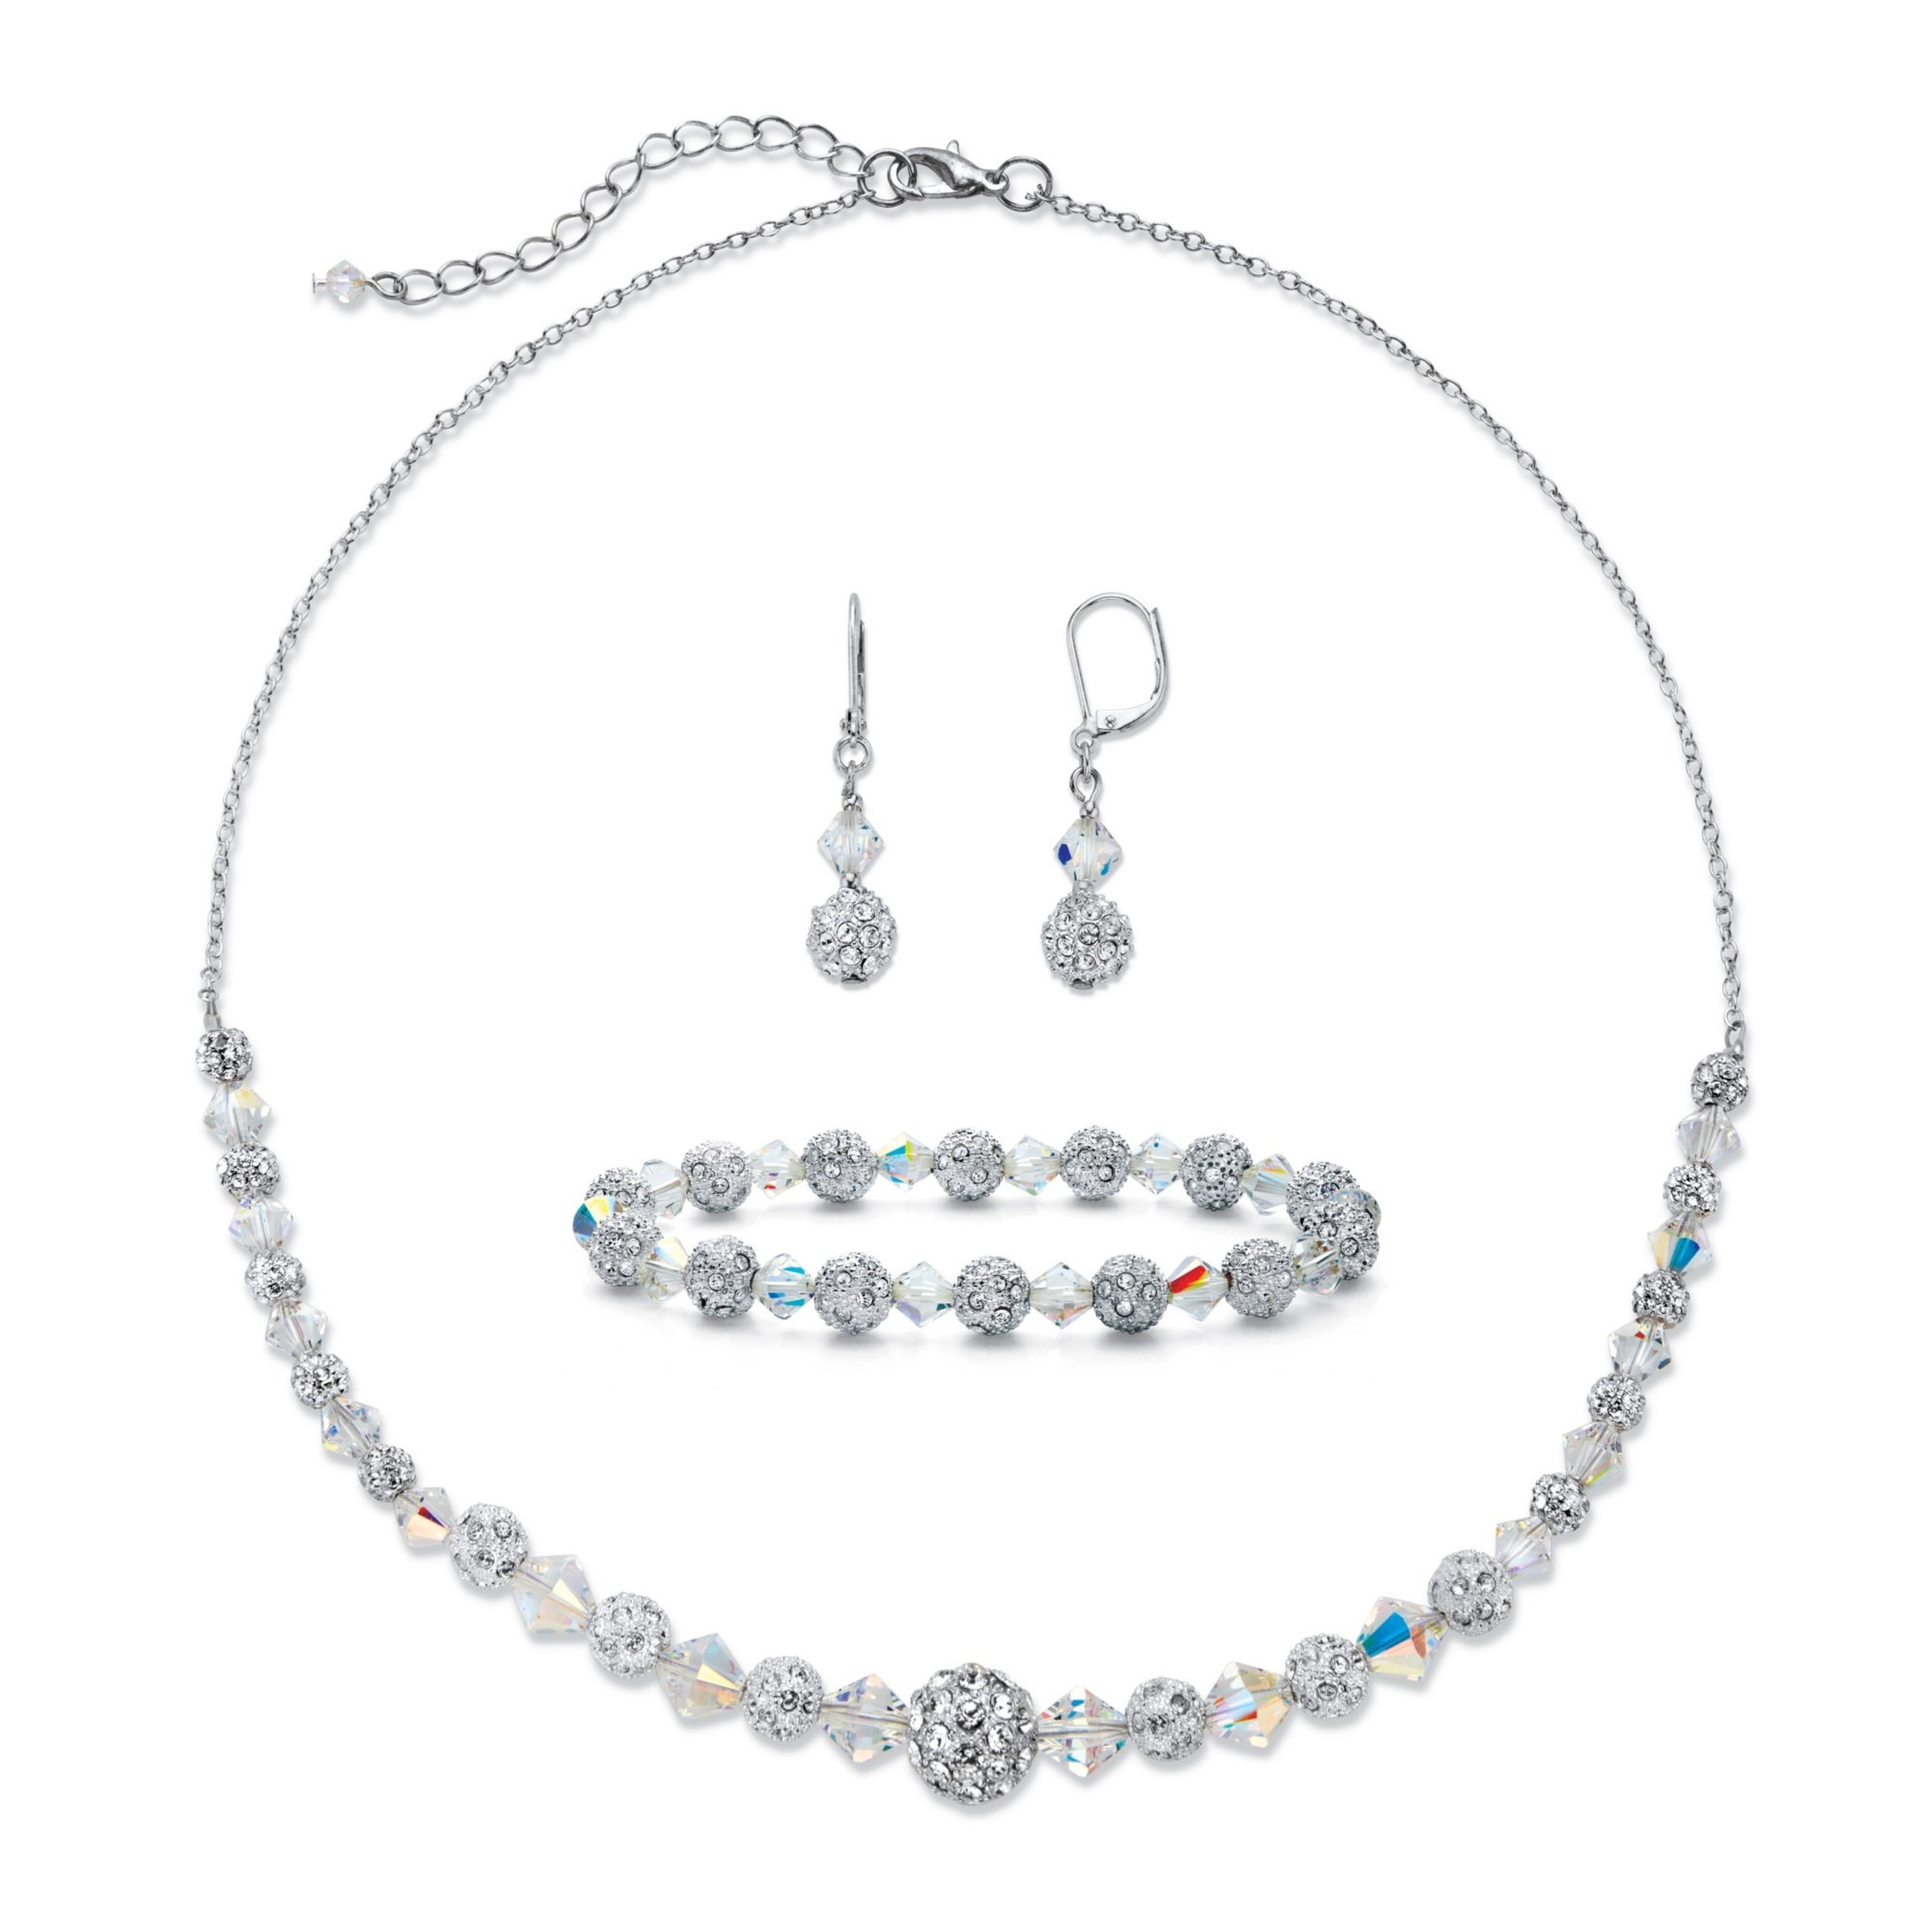 8ba96fb86 3.07 TCW Pave Cubic Zirconia and Aurora Borealis Crystal Silvertone 3-Piece  Beaded Earring, Bracelet and Necklace Set 17